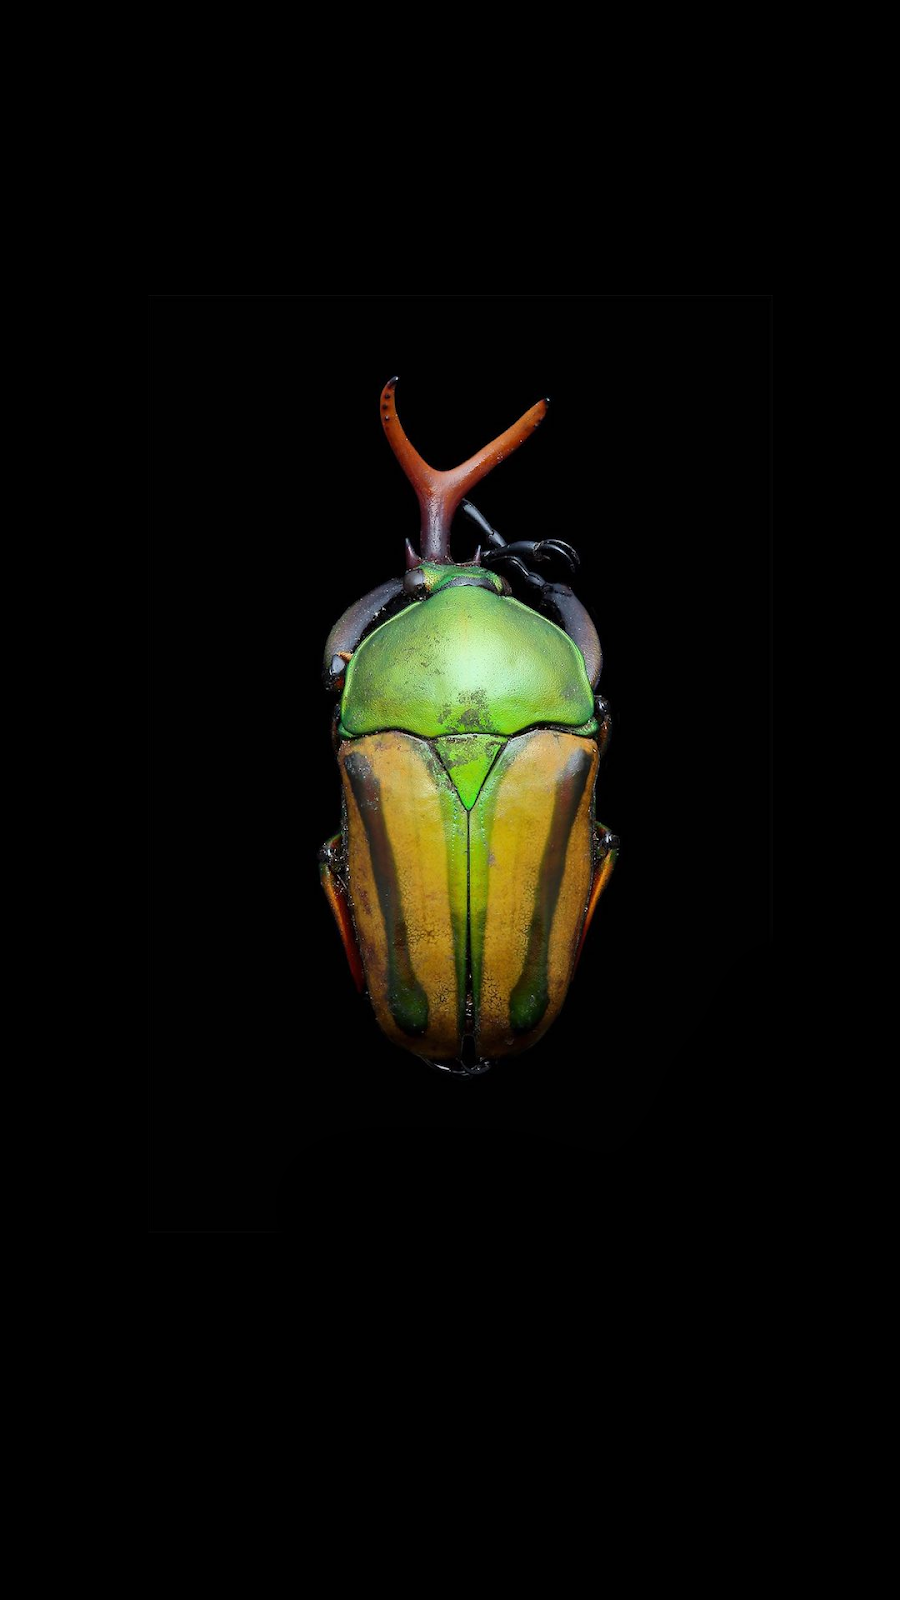 AMOLED WALLPAPER FOR SMATPHONES WITH INSECT MACRO PHOTOGRAF IN HD AND BLACK BACKGROUND